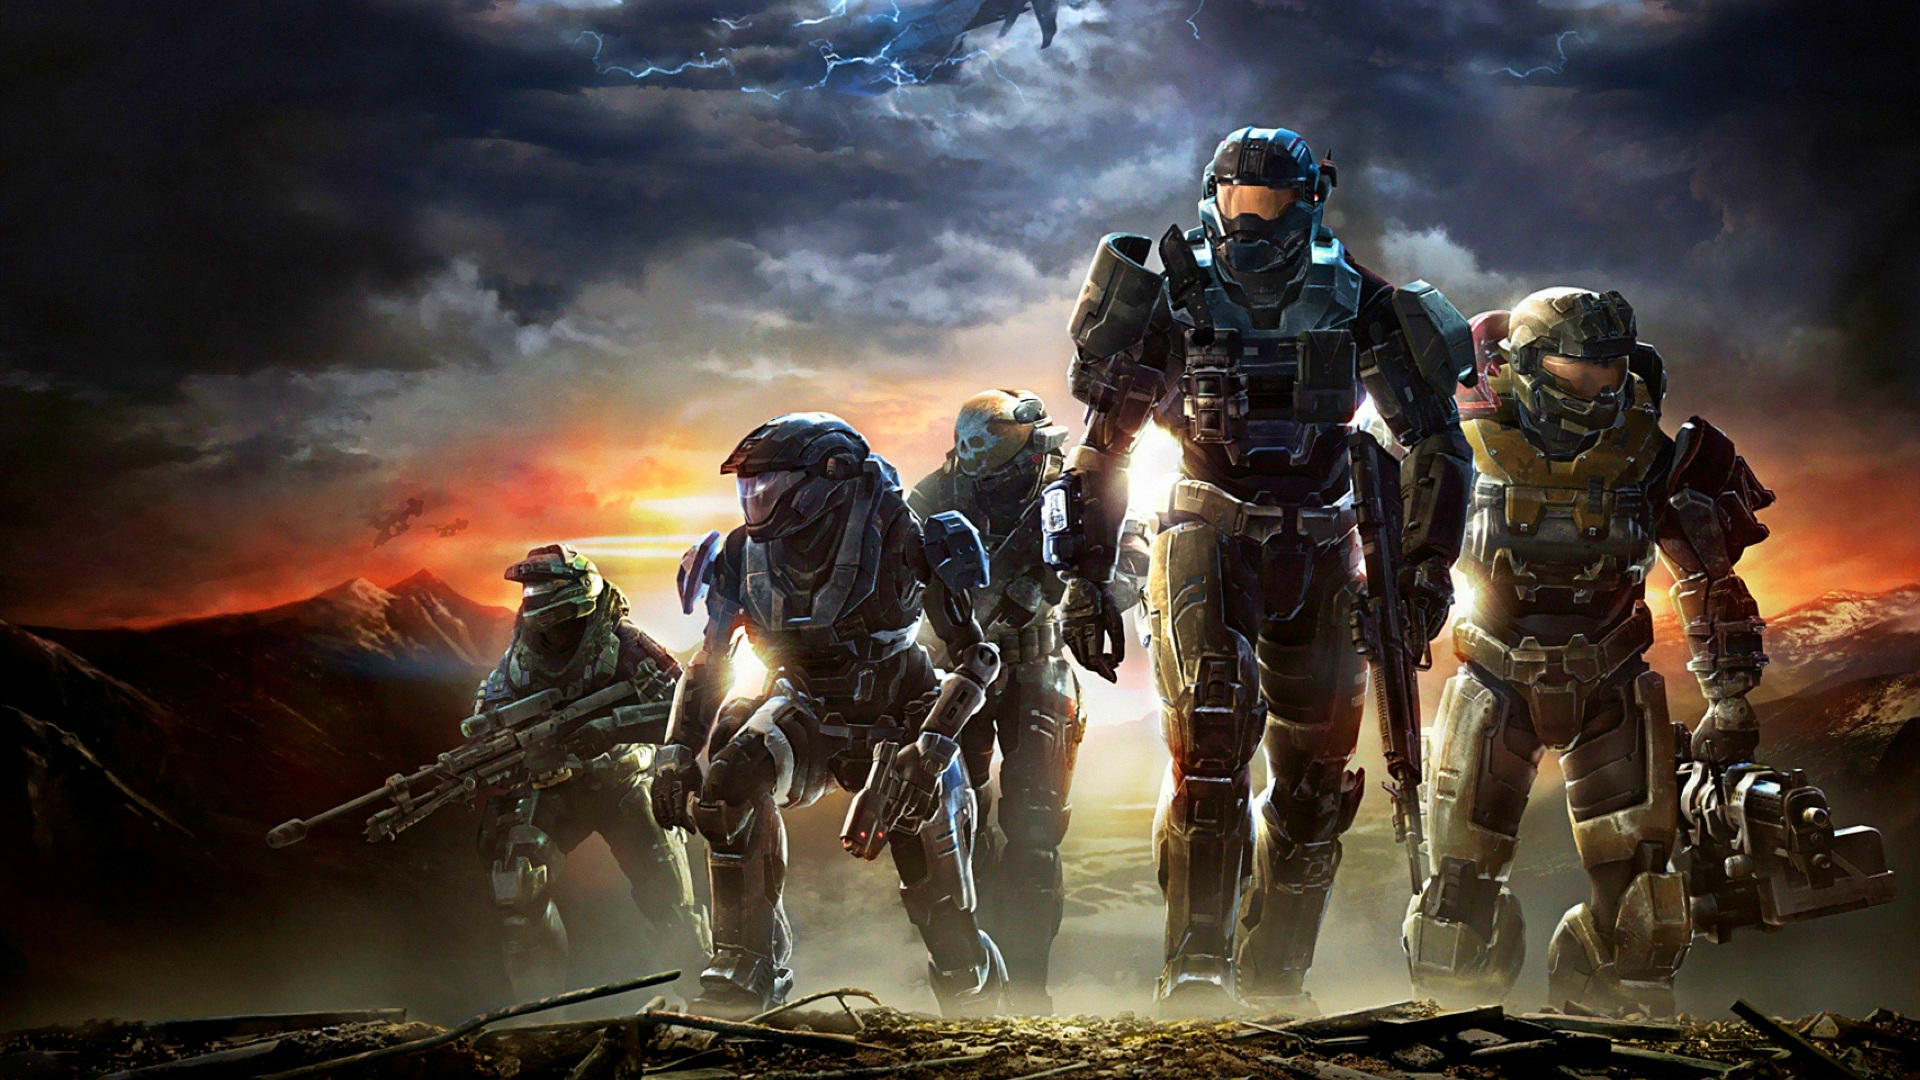 Halo Reach PC Version Full Game Free Download